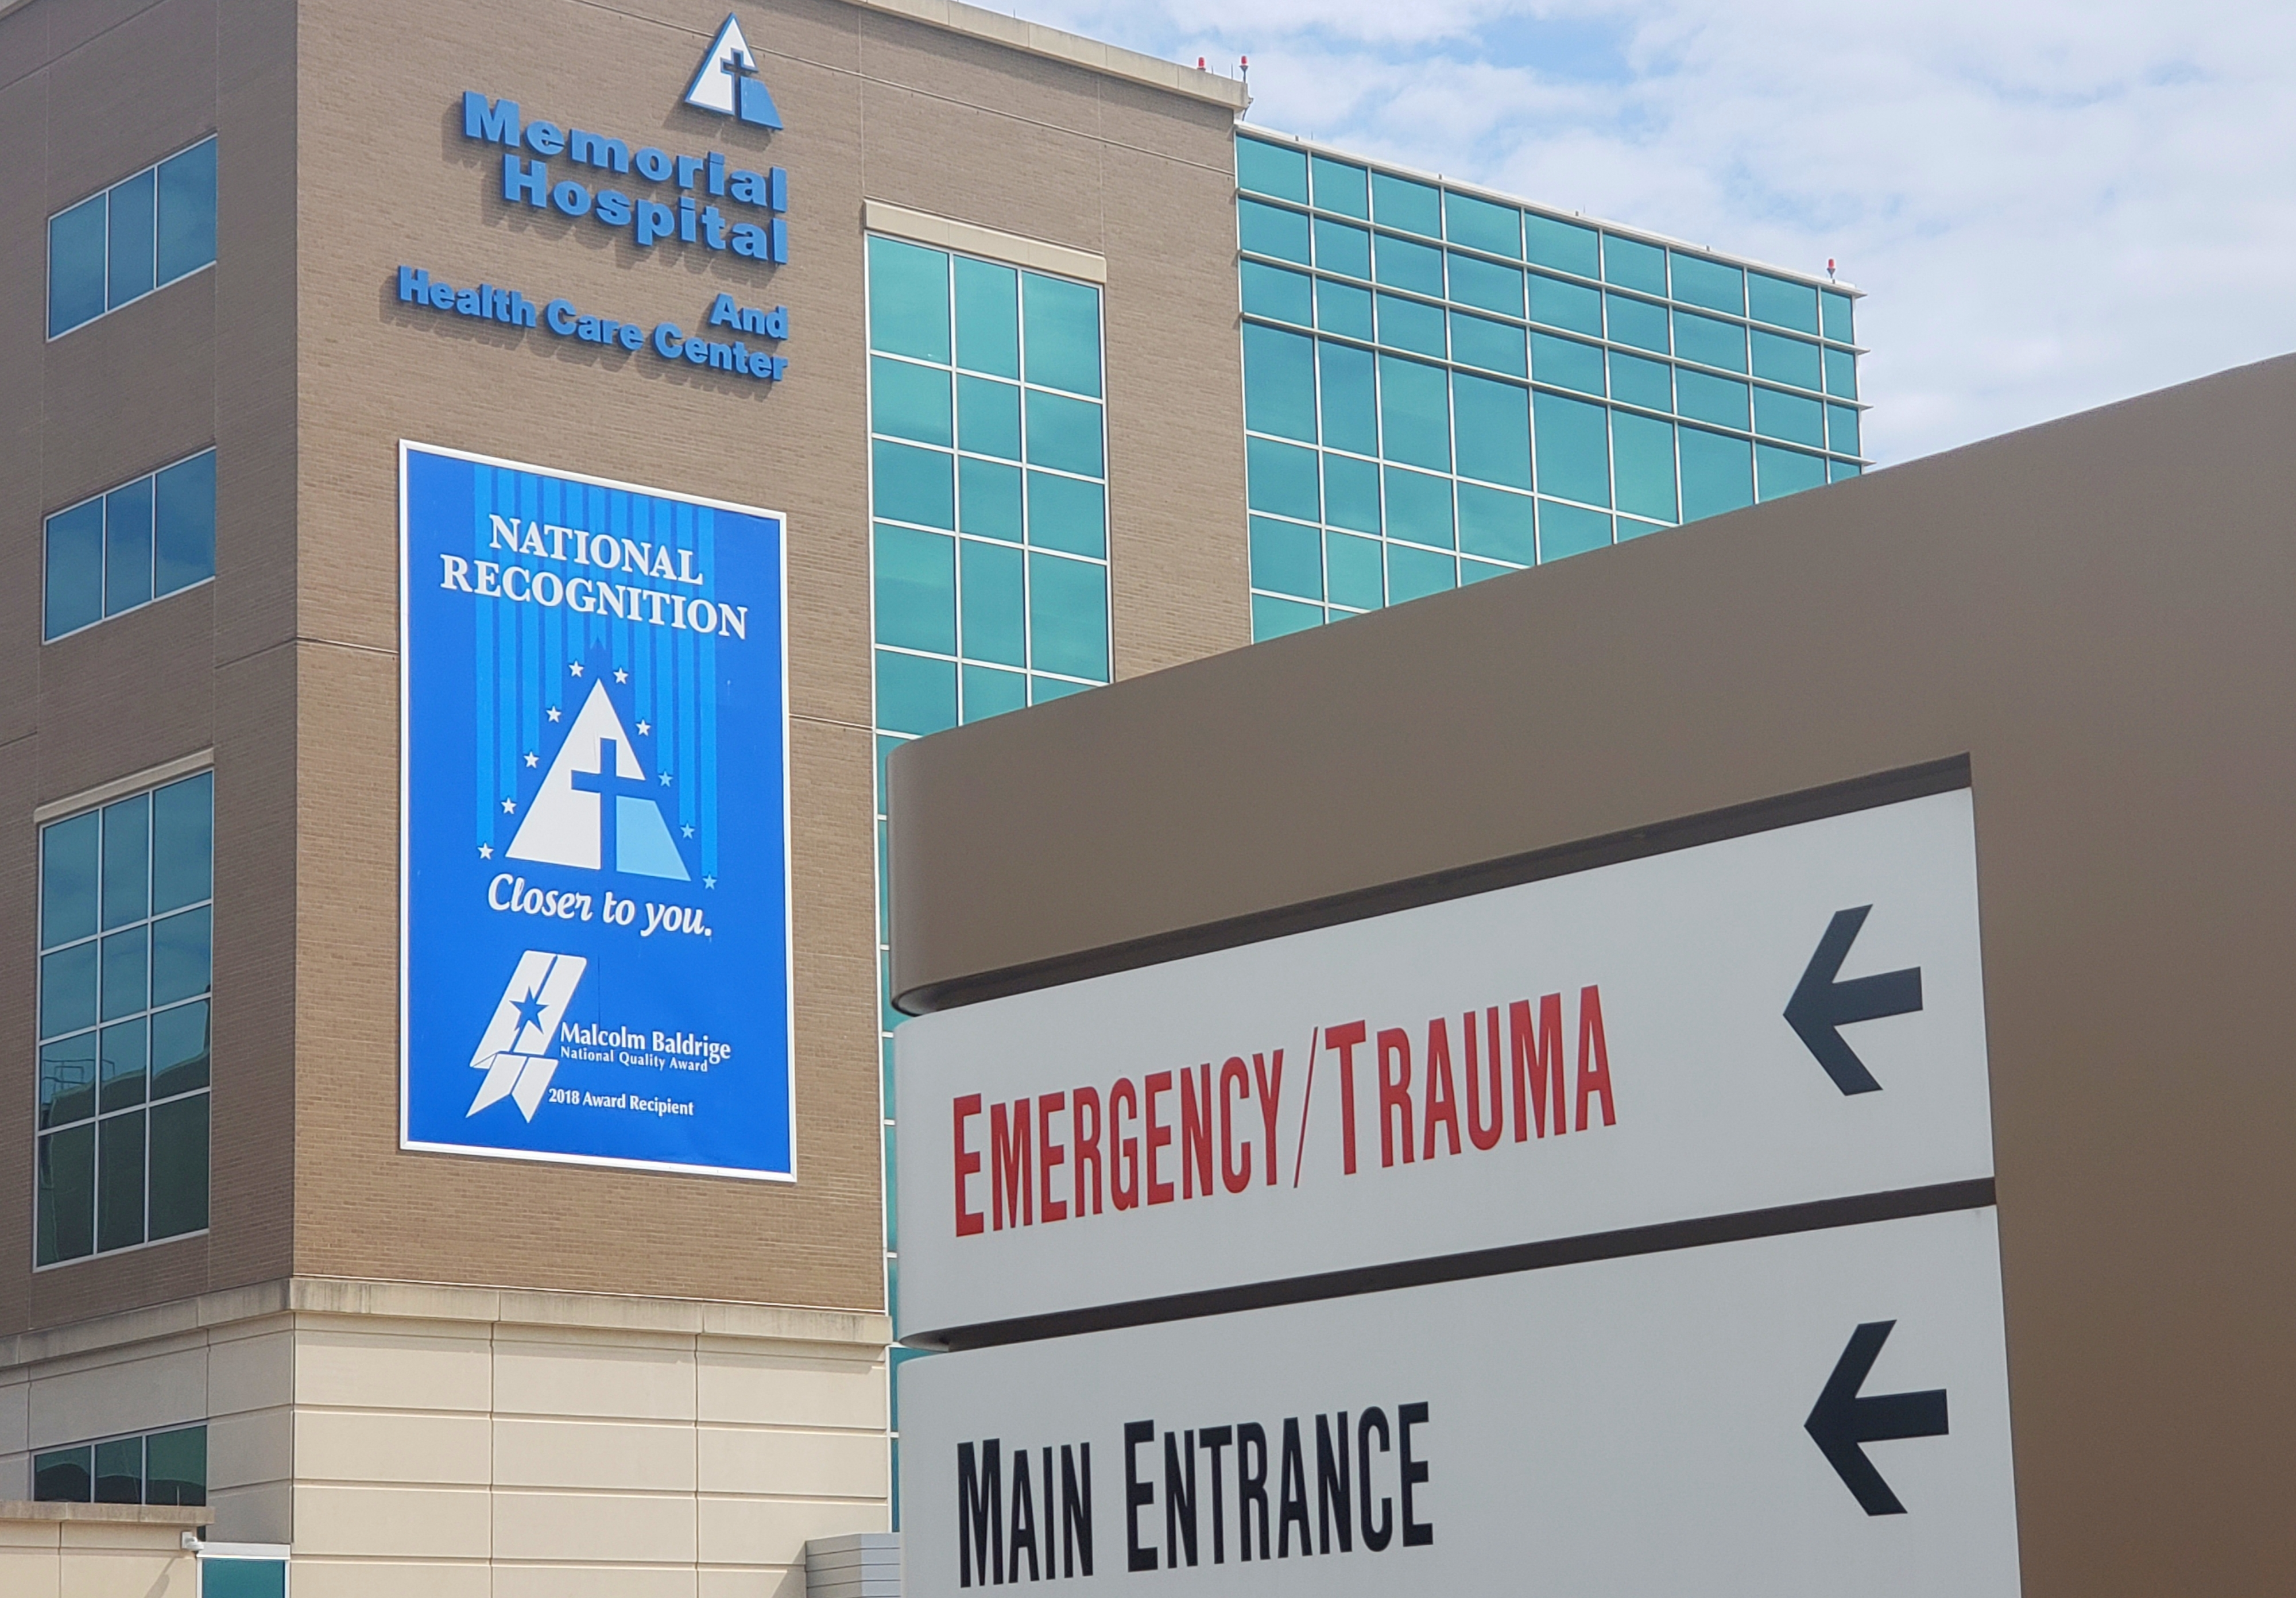 Memorial Hospital in Jasper to Keep Visitation Restrictions In Place For Now, Others Doing the Same